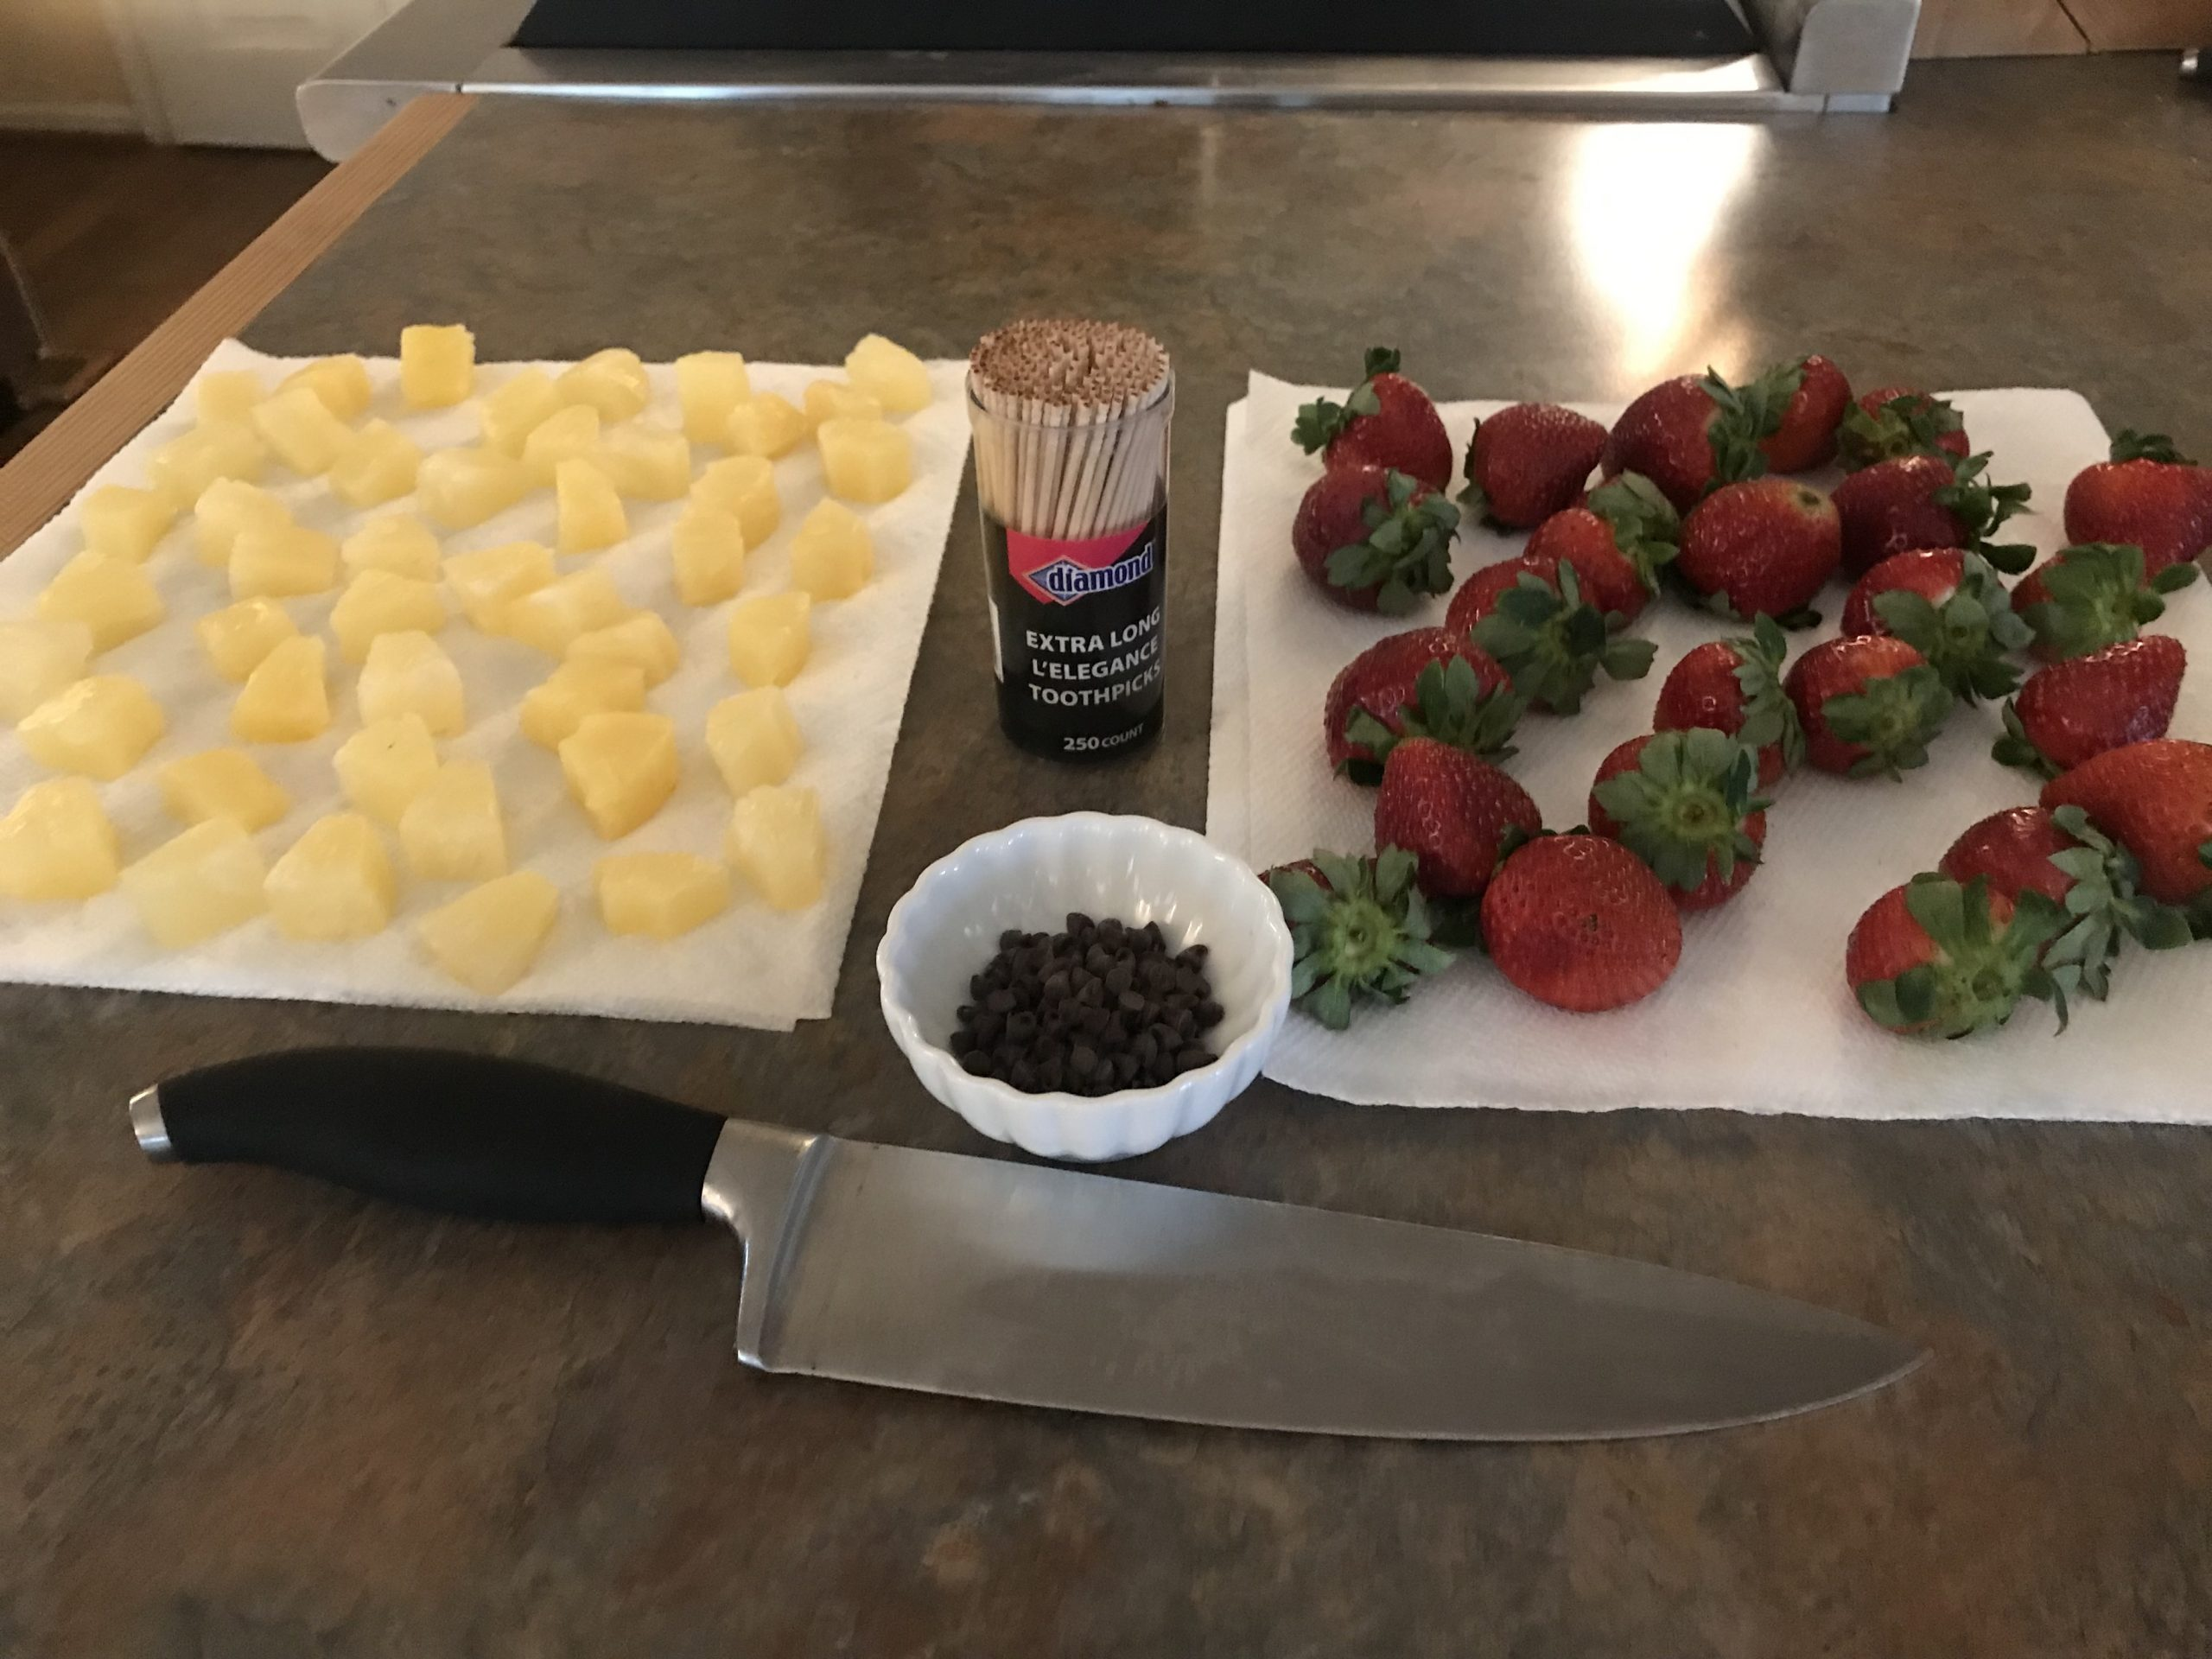 Ingredients for Strawberry Cream Cheese Santas